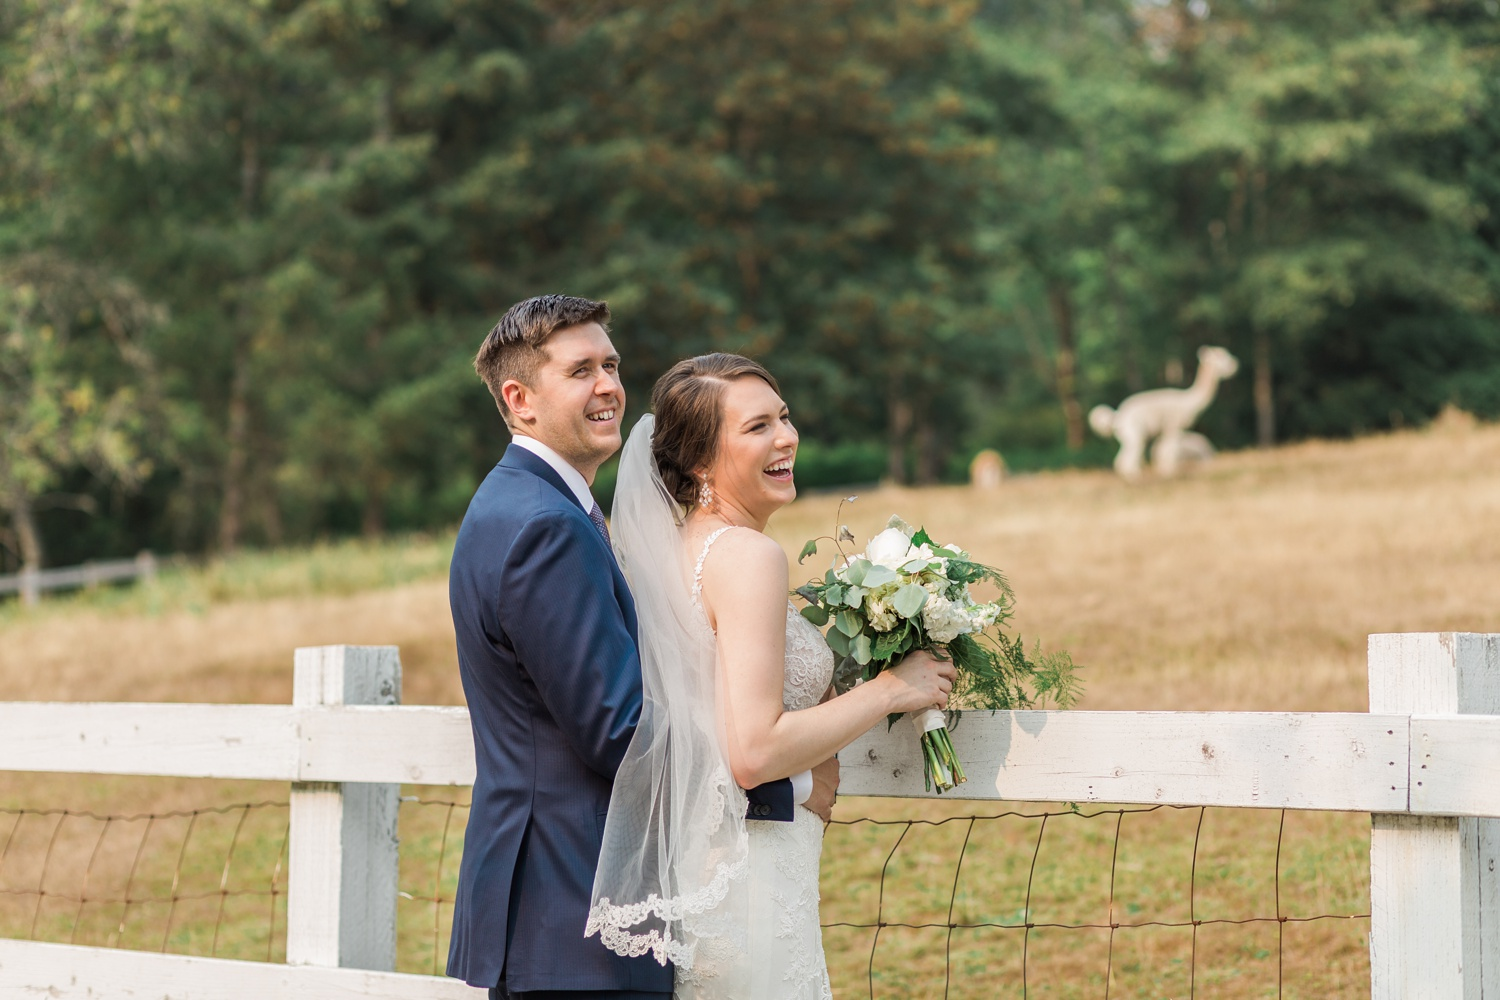 A bride and groom stand at a fence watching livestock before their wedding at Chateau Lill in Woodinville, a wedding venue near Seattle, WA. | Joanna Monger Photography | Seattle & Snohomish Photographer